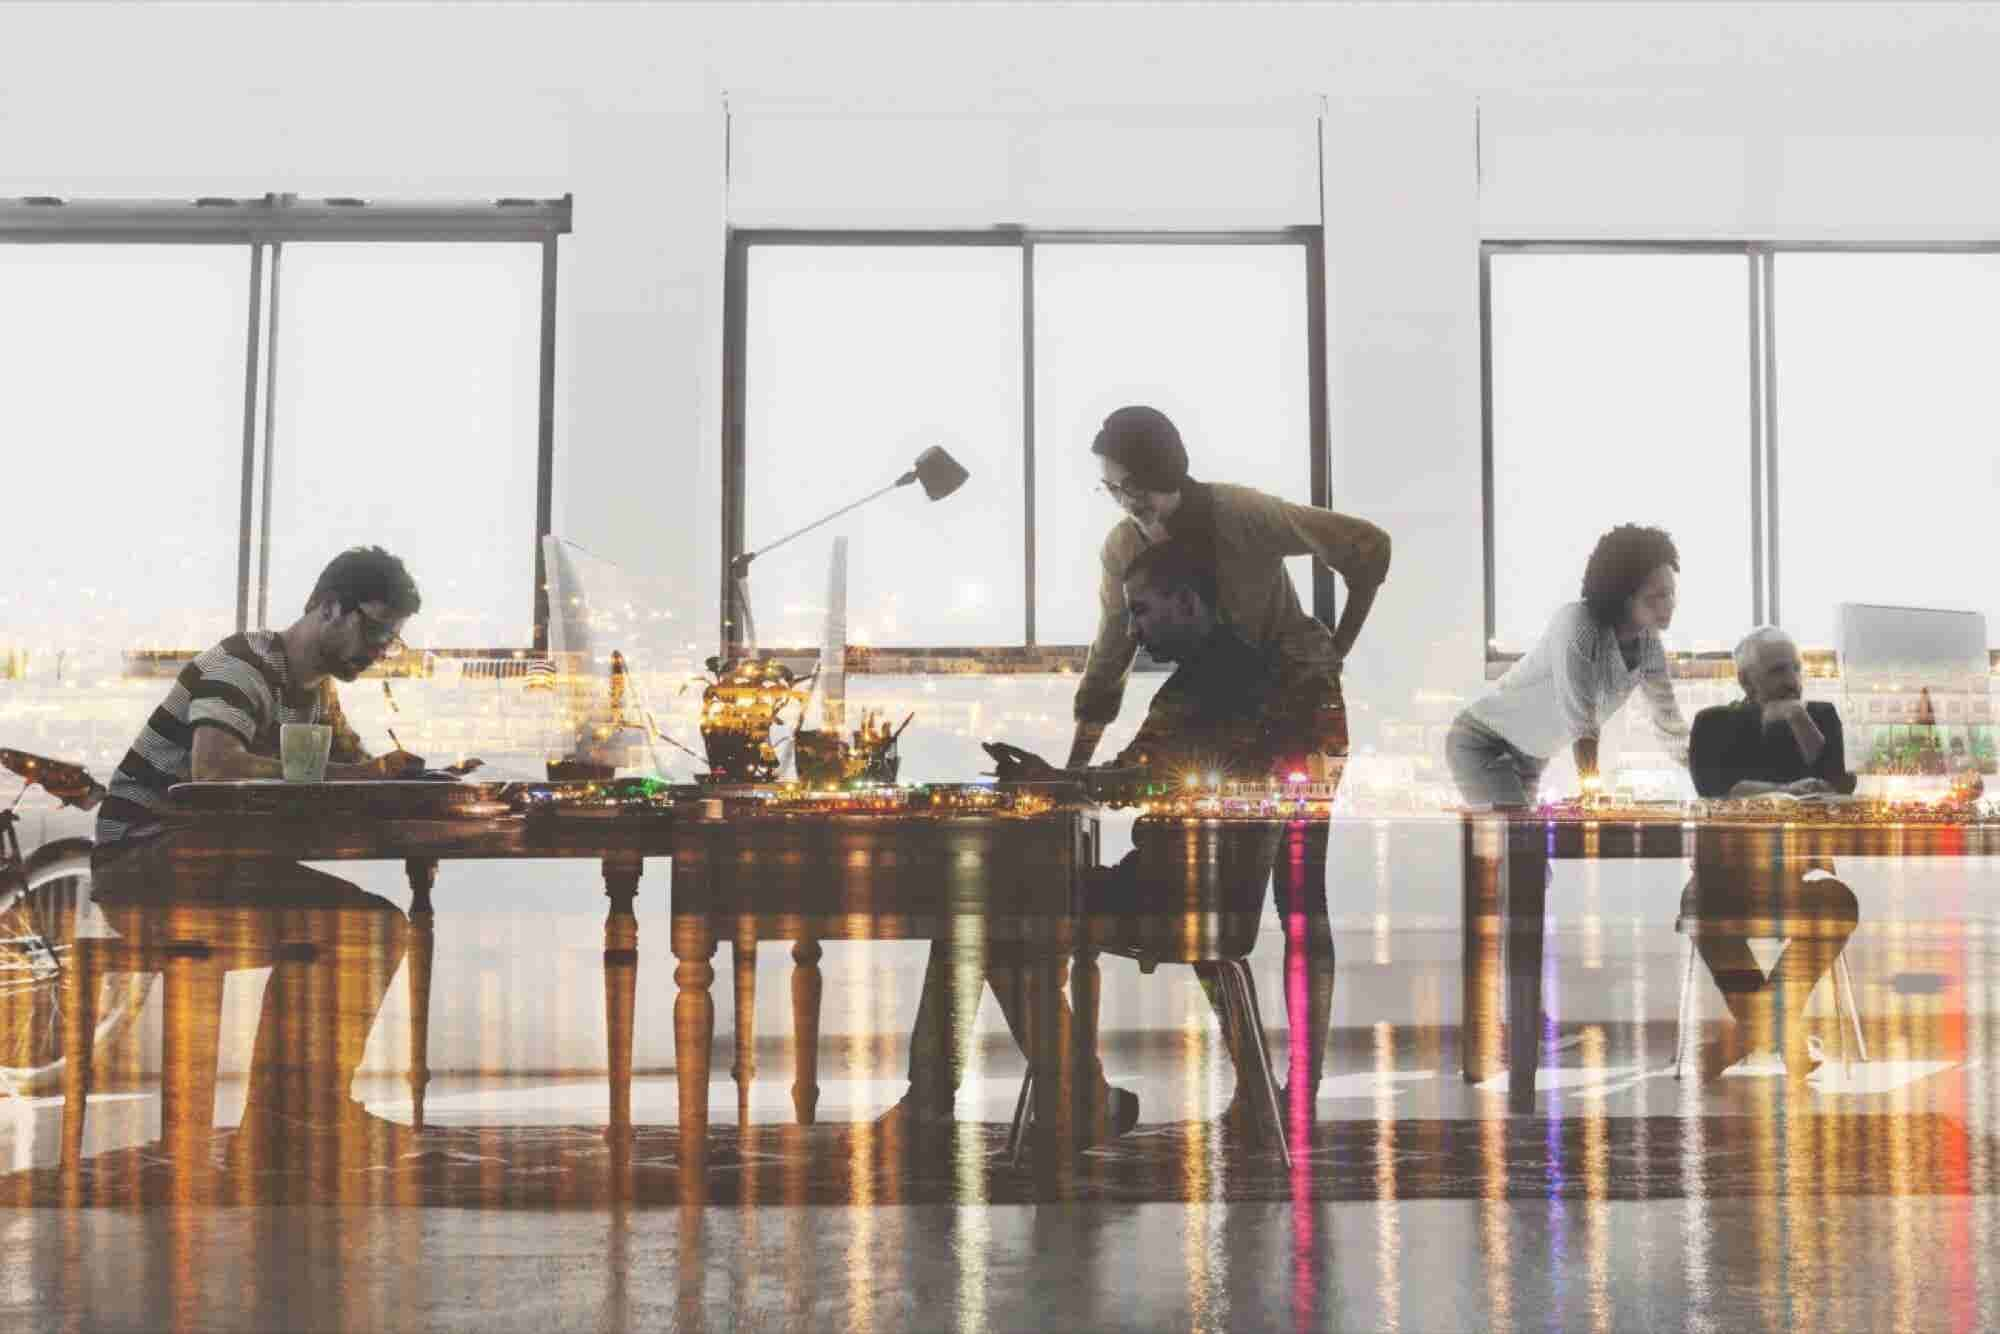 Wanted: Creative Solutions to Shape a Workable Future